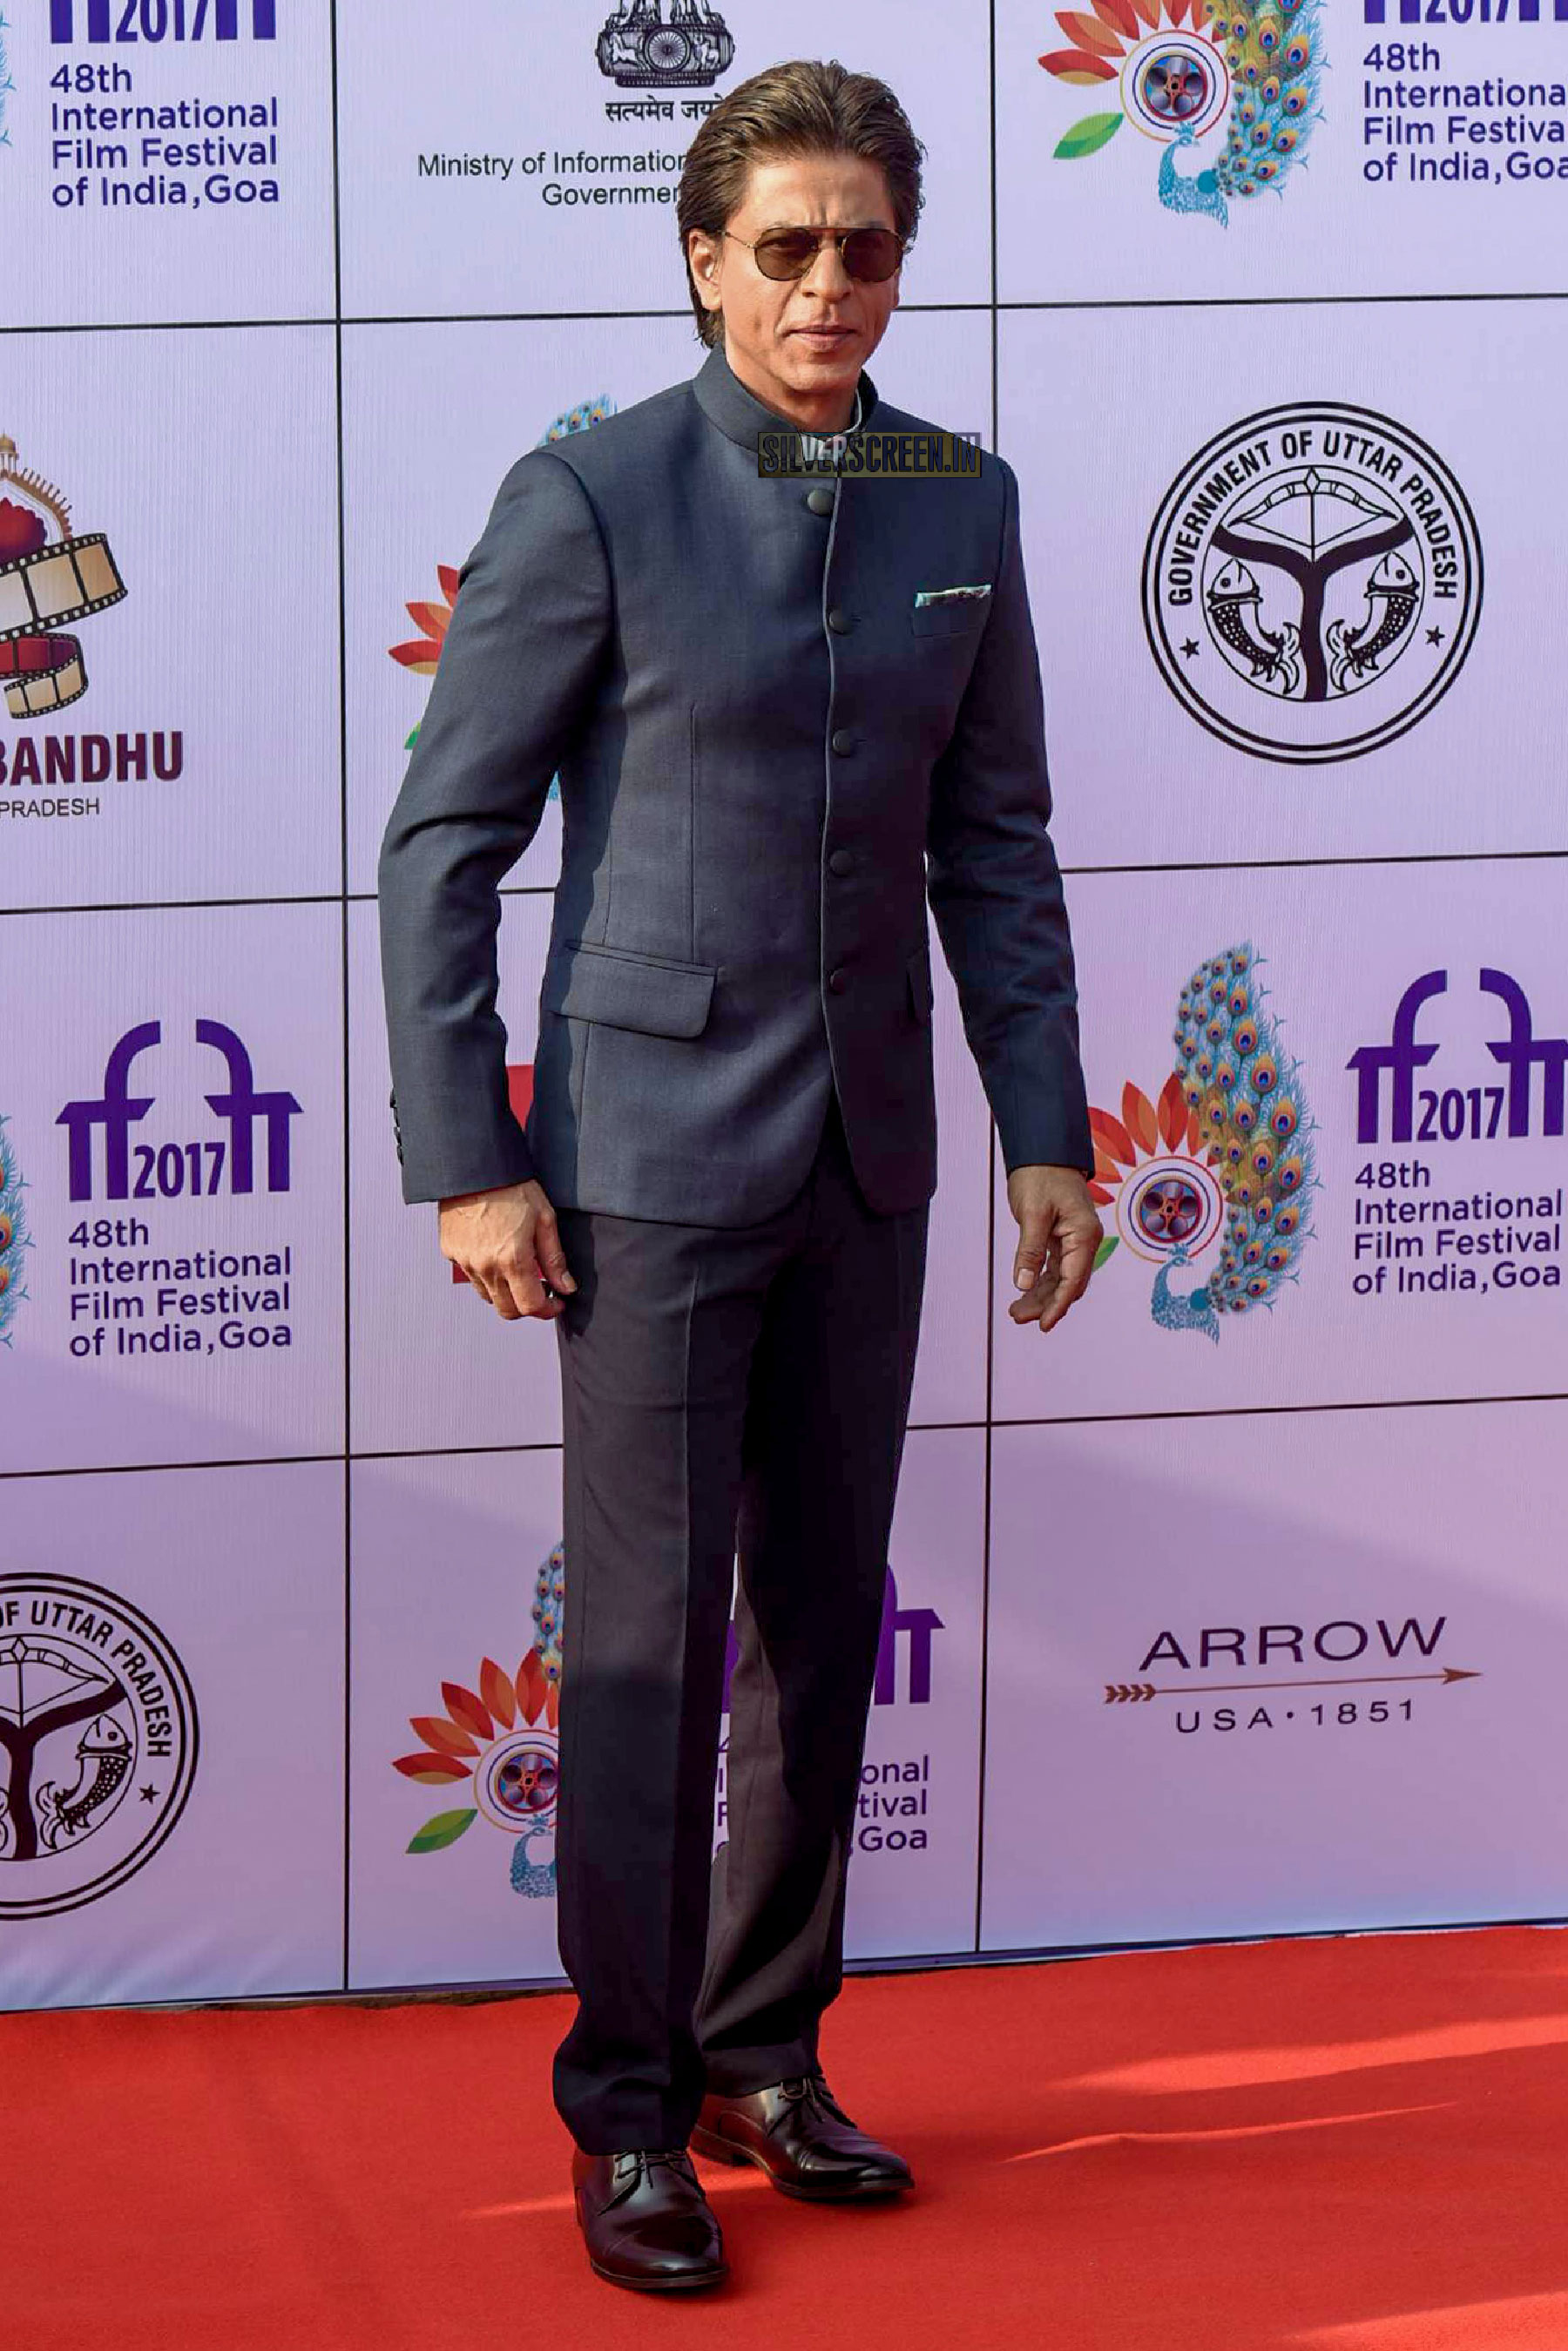 Shah Rukh Khan on the first day of International Film Festival of India (IFFI) in Goa.